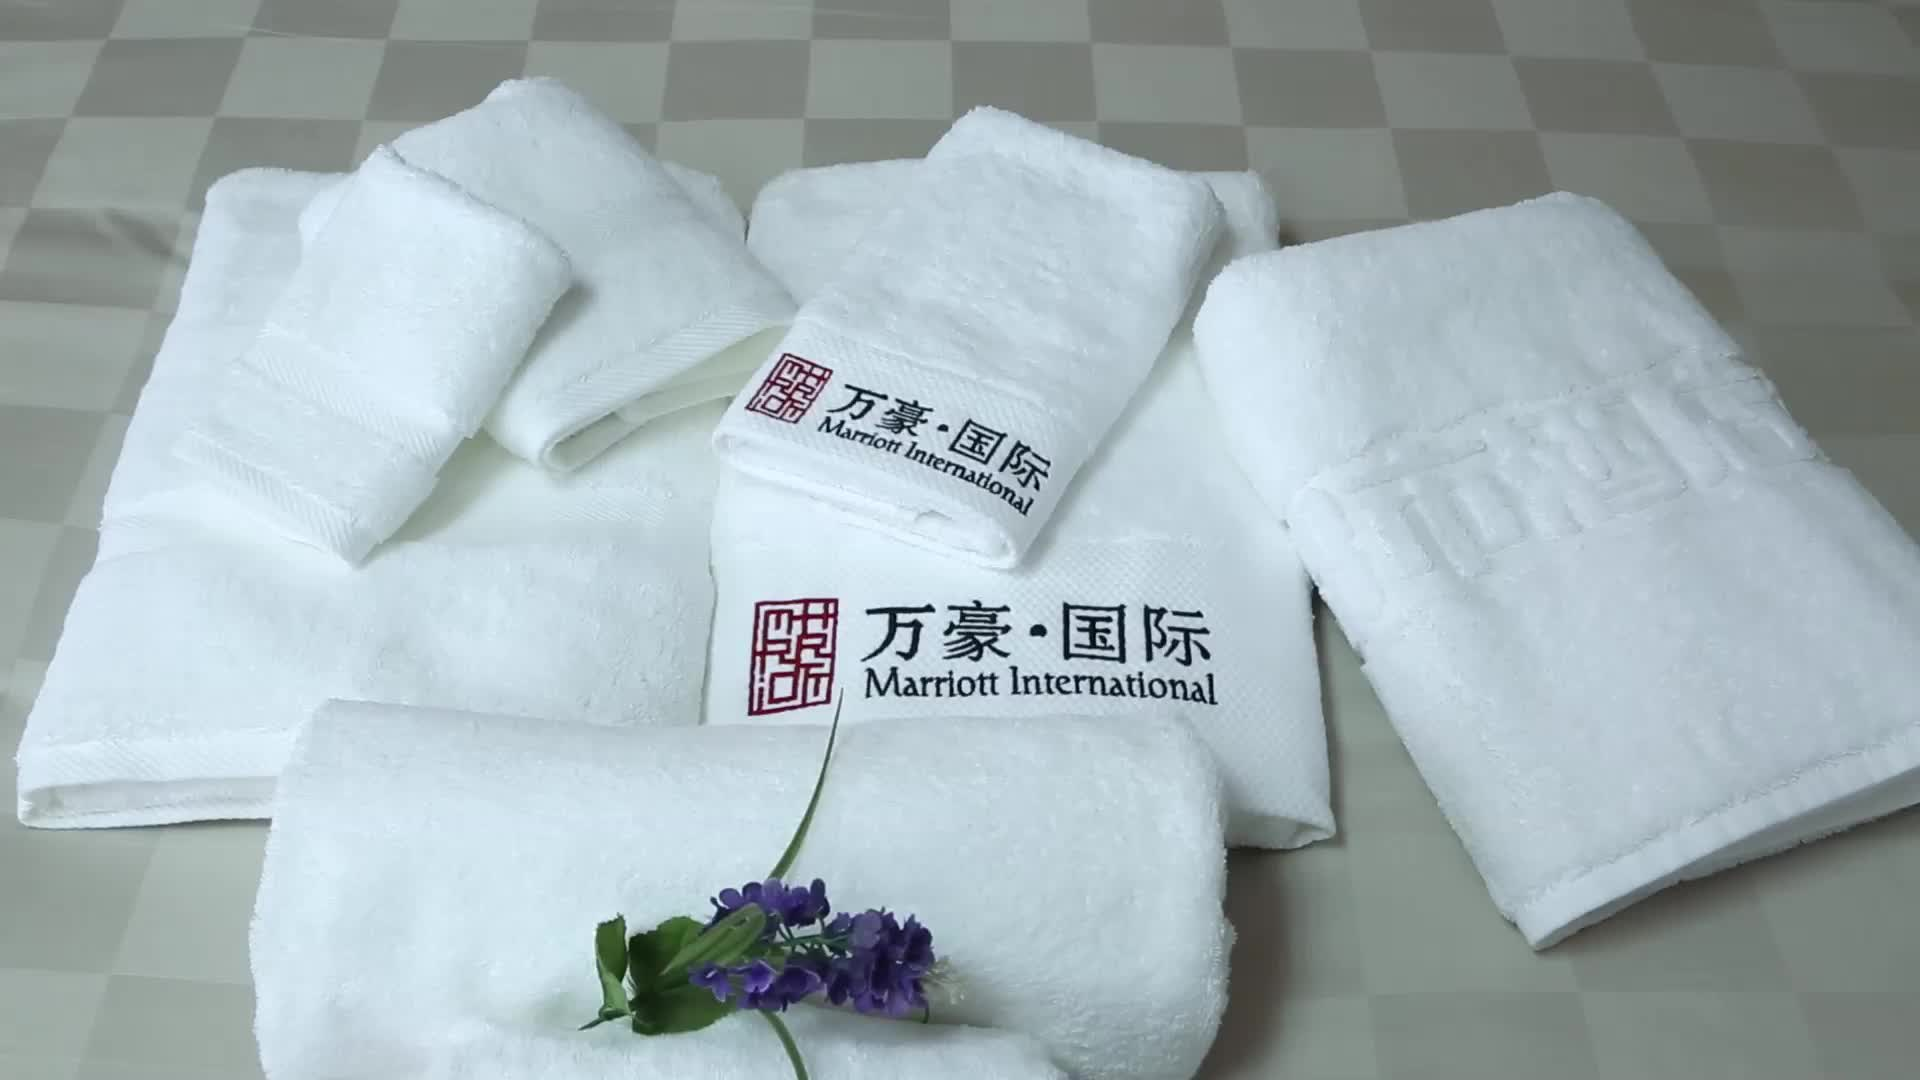 Solid Plain white 100% cotton hotel bath linen towels set without logo in stock Guangzhou